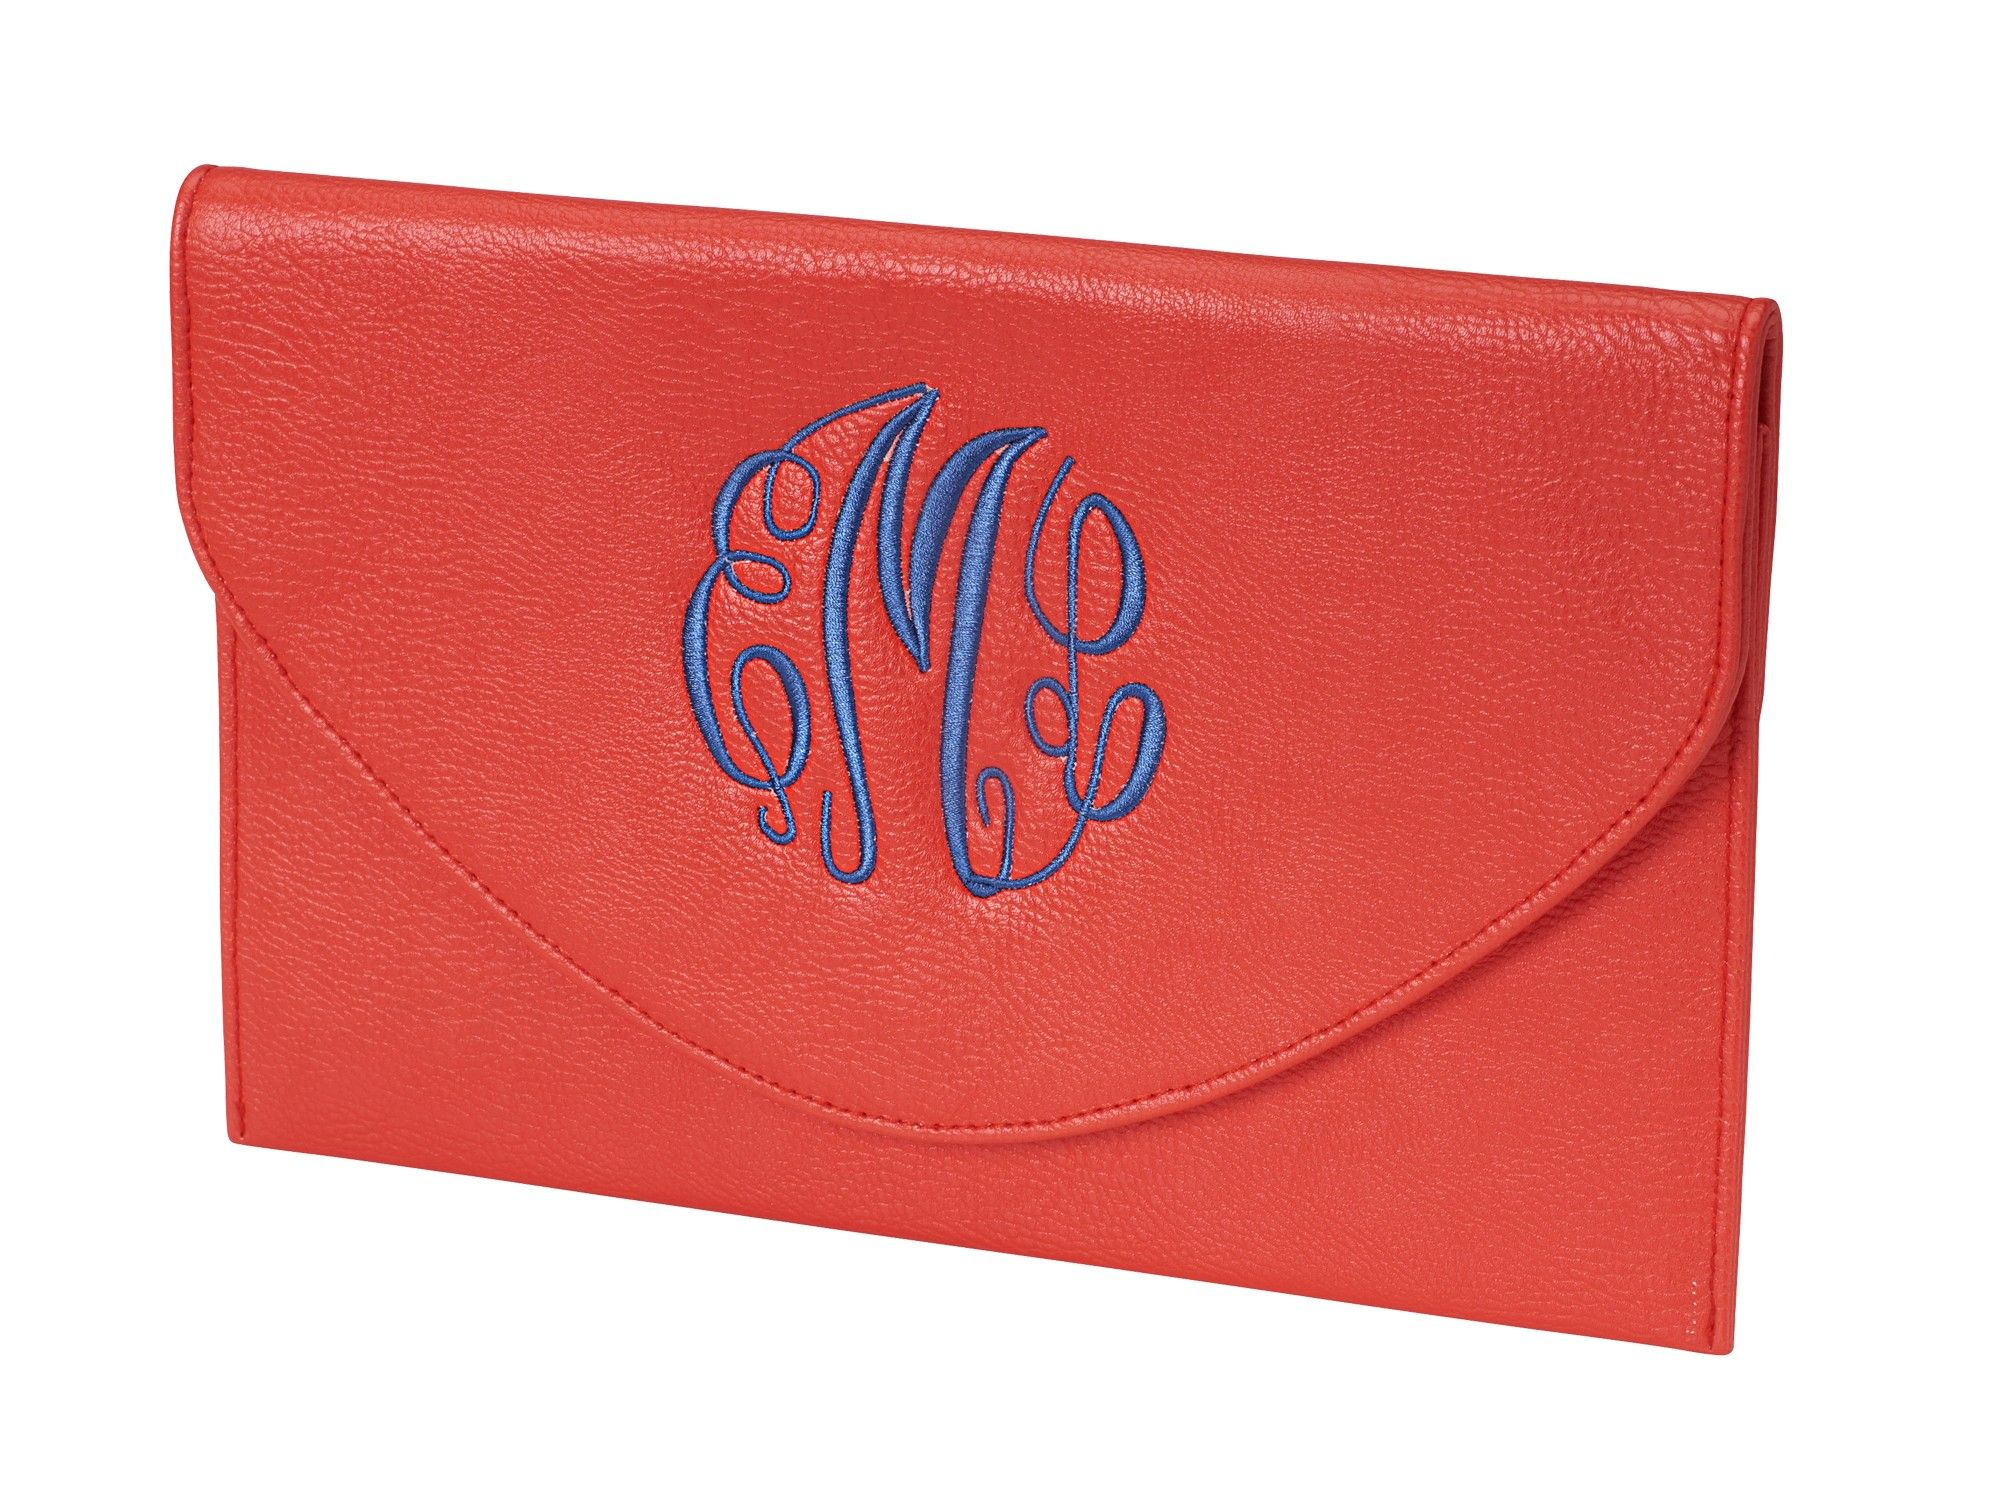 Monogrammed Coral Clutch Cross-Body Wristlet Purse - Personalized